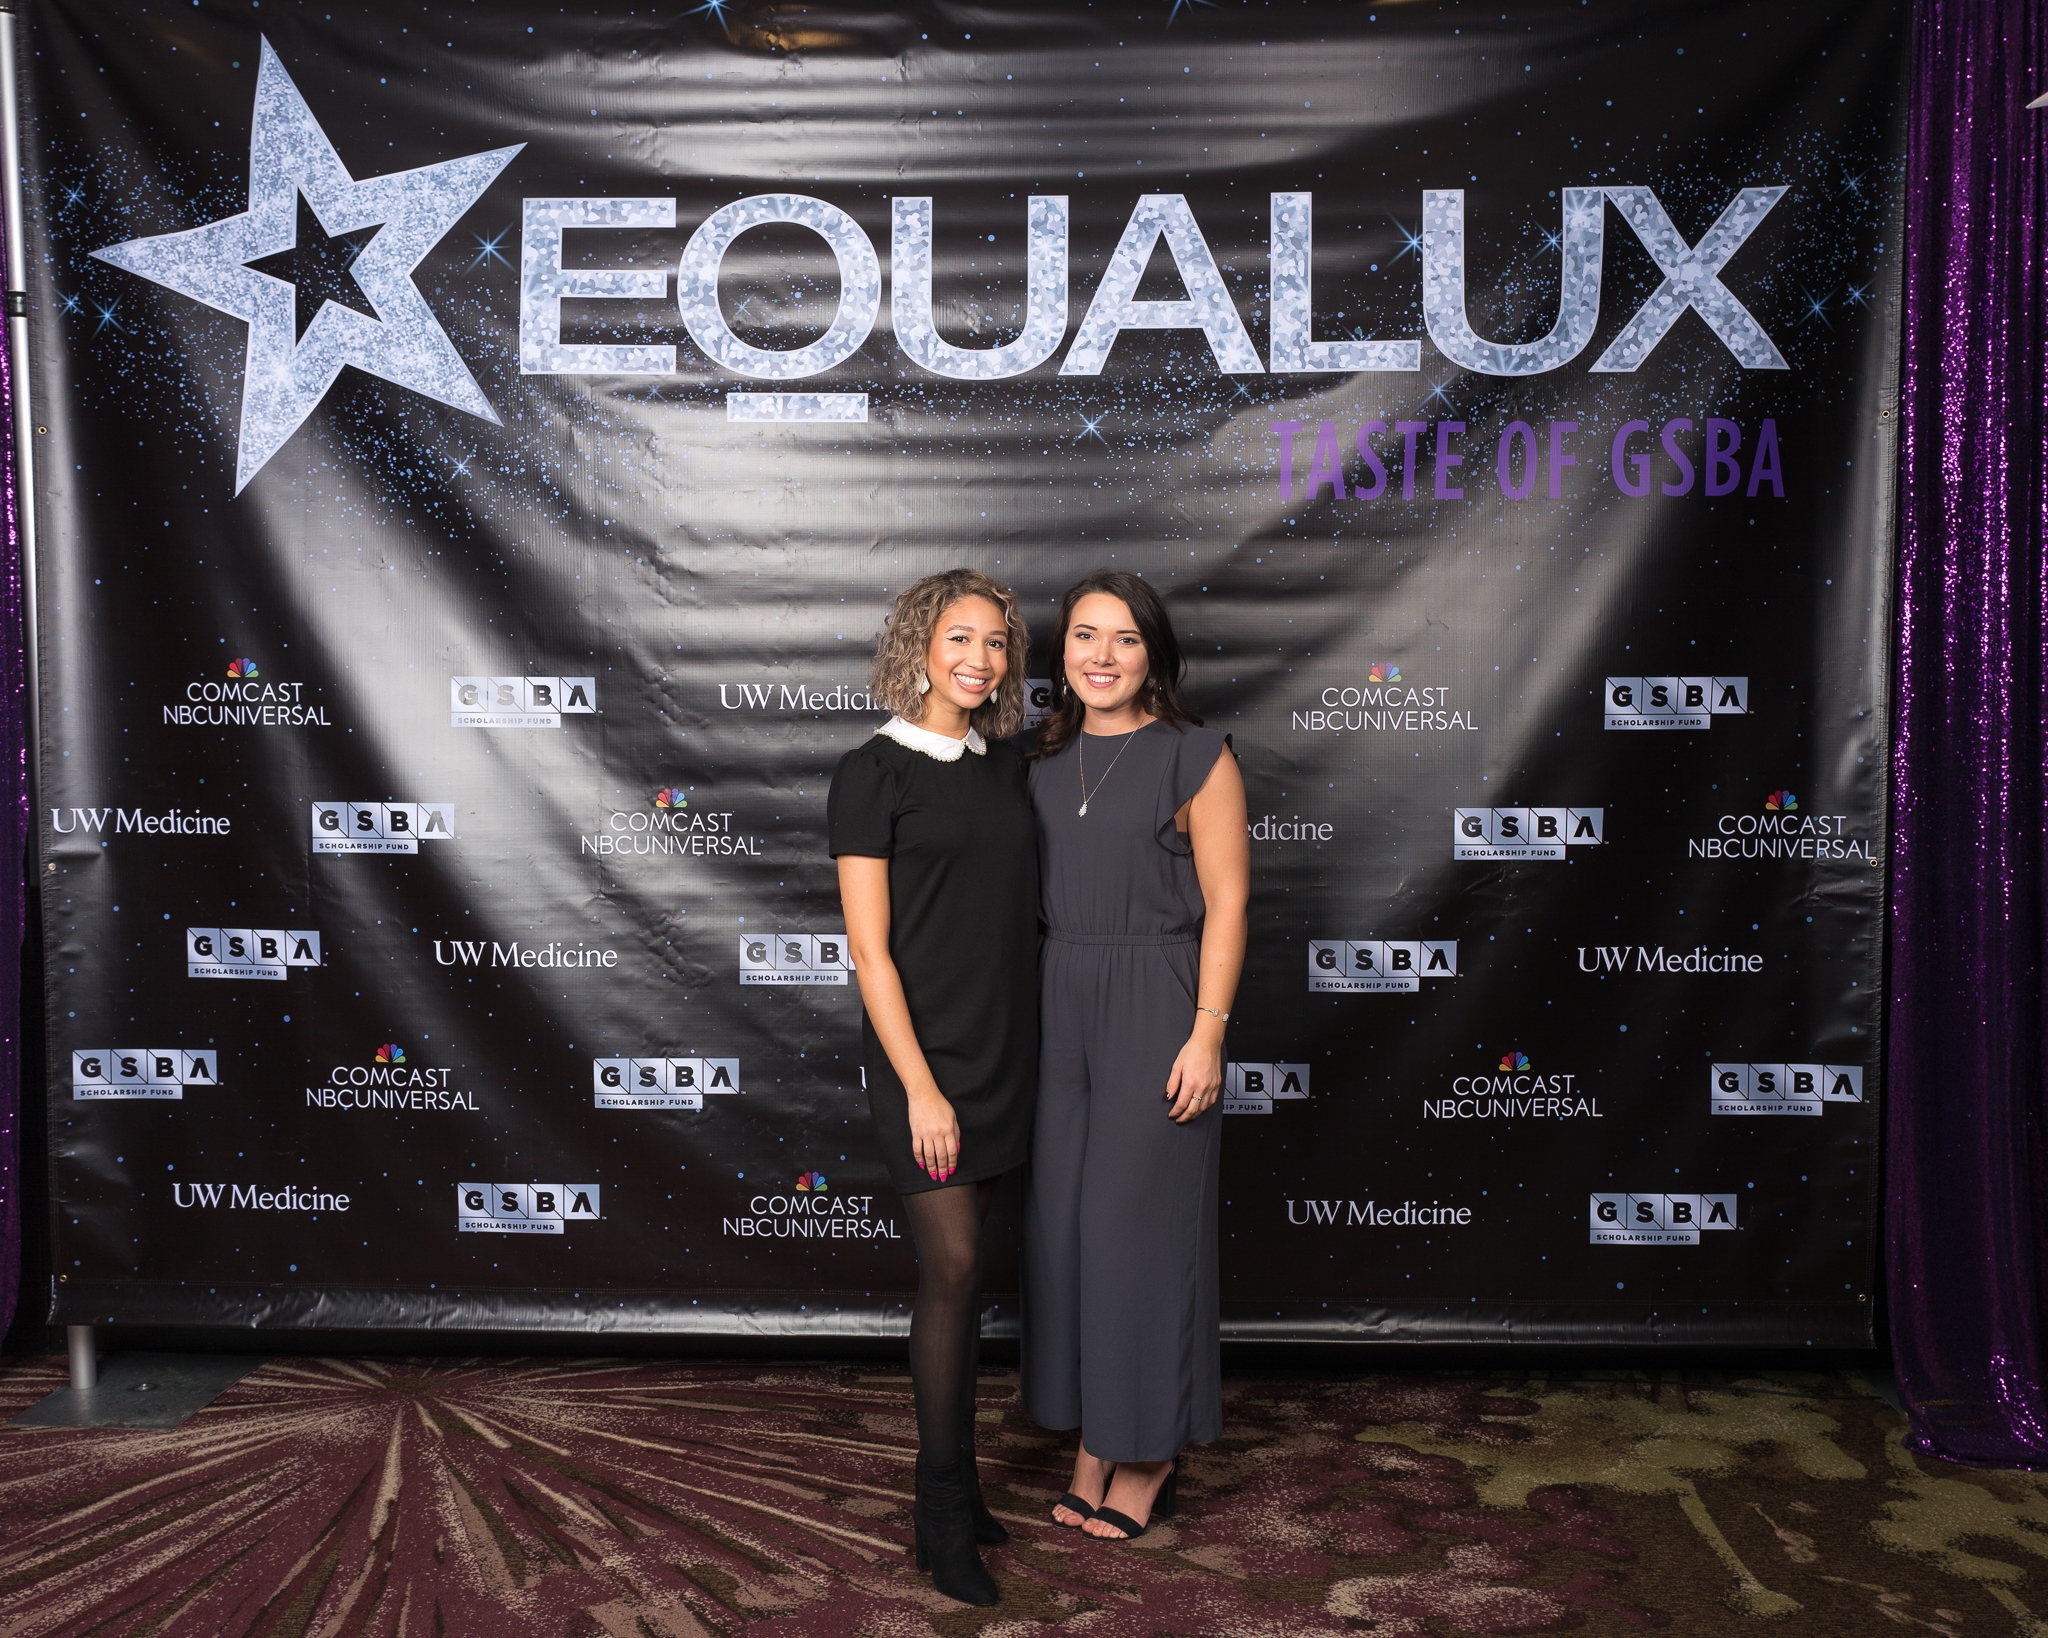 111718_GSBA EQUALUX at The Westin Seattle (Credit- Nate Gowdy)-07.jpg